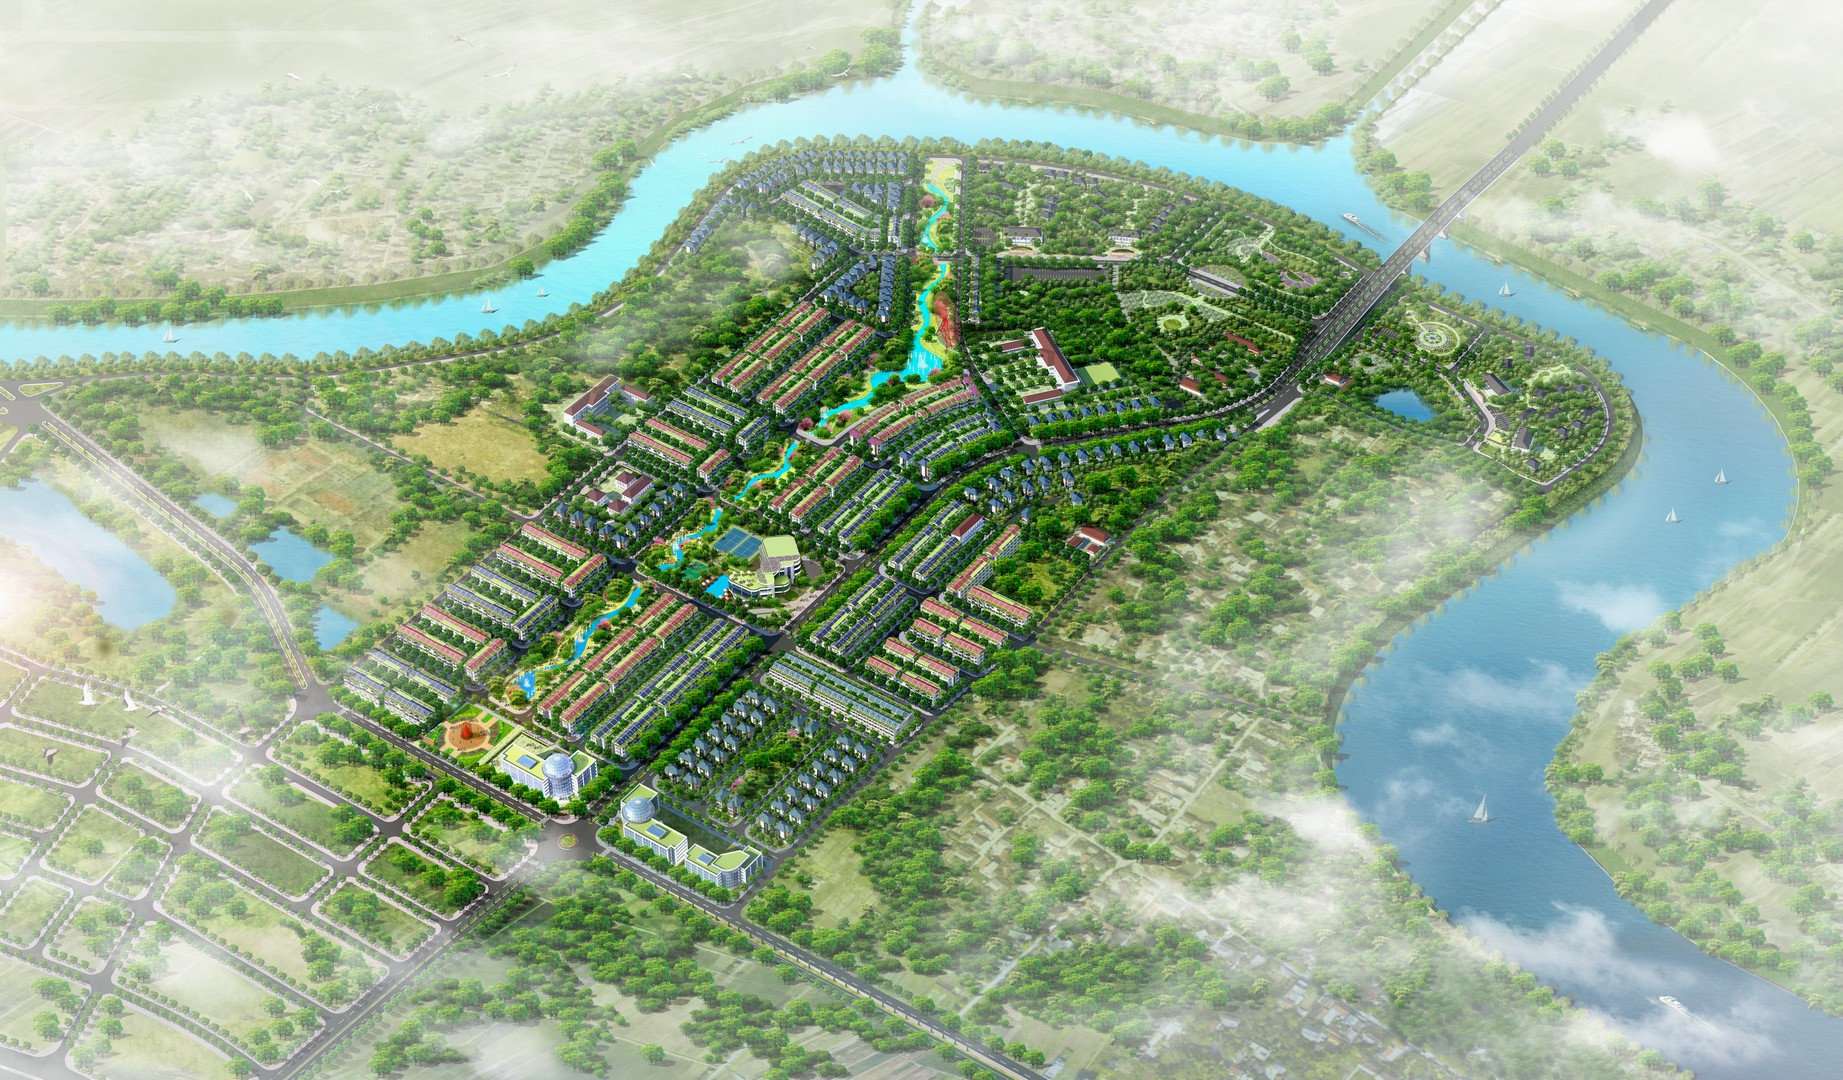 Phoi-canh-tong-the-river-silk-city